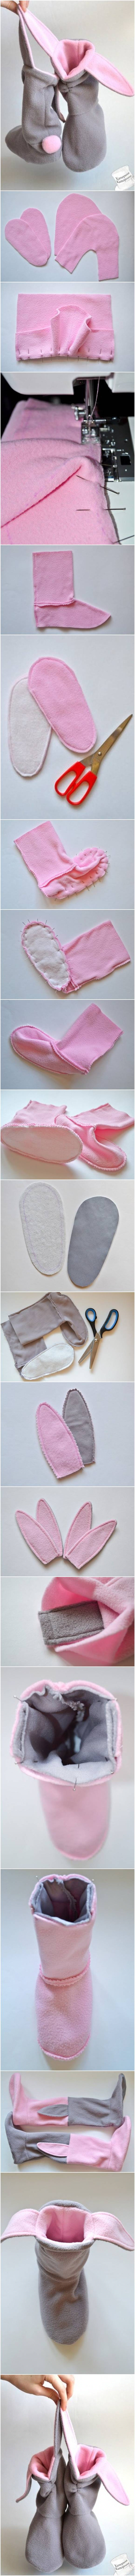 DIY Lovely Bunny Slippers